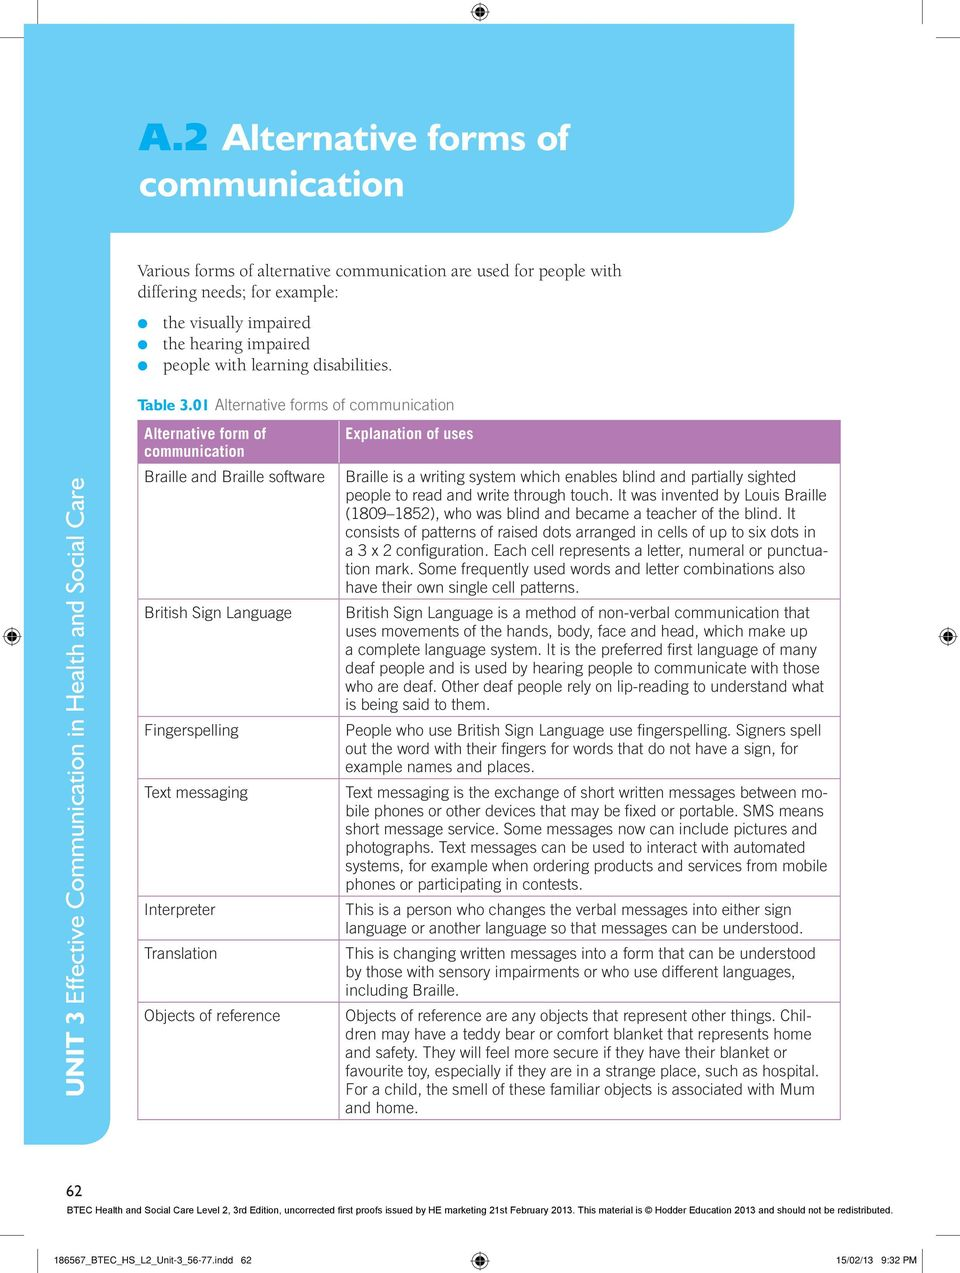 specific communication needs in health and social care